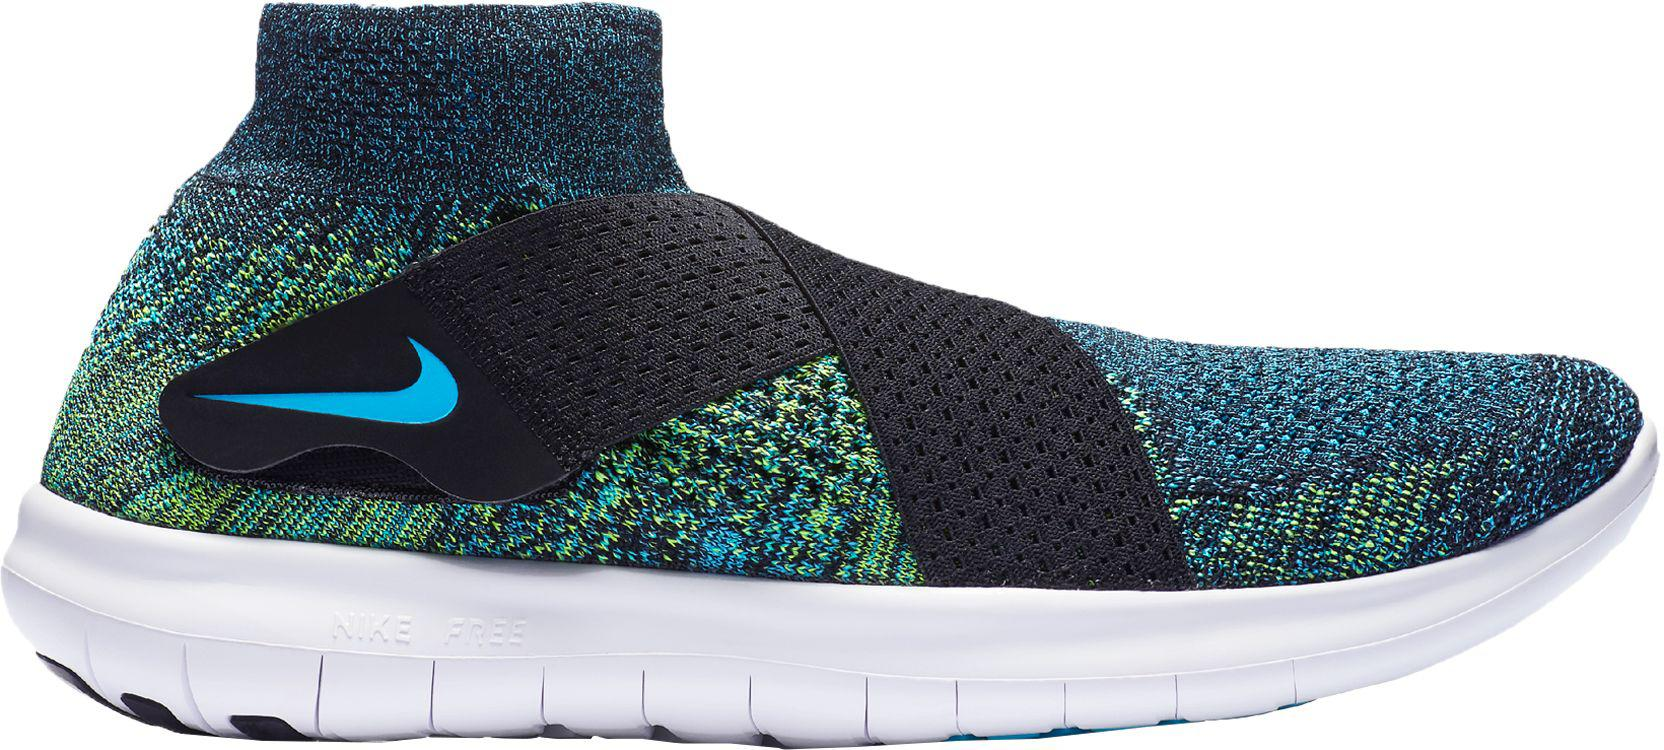 4fabc45348e Lyst - Nike Free Rn Motion Flyknit 2 Running Shoes in Blue for Men